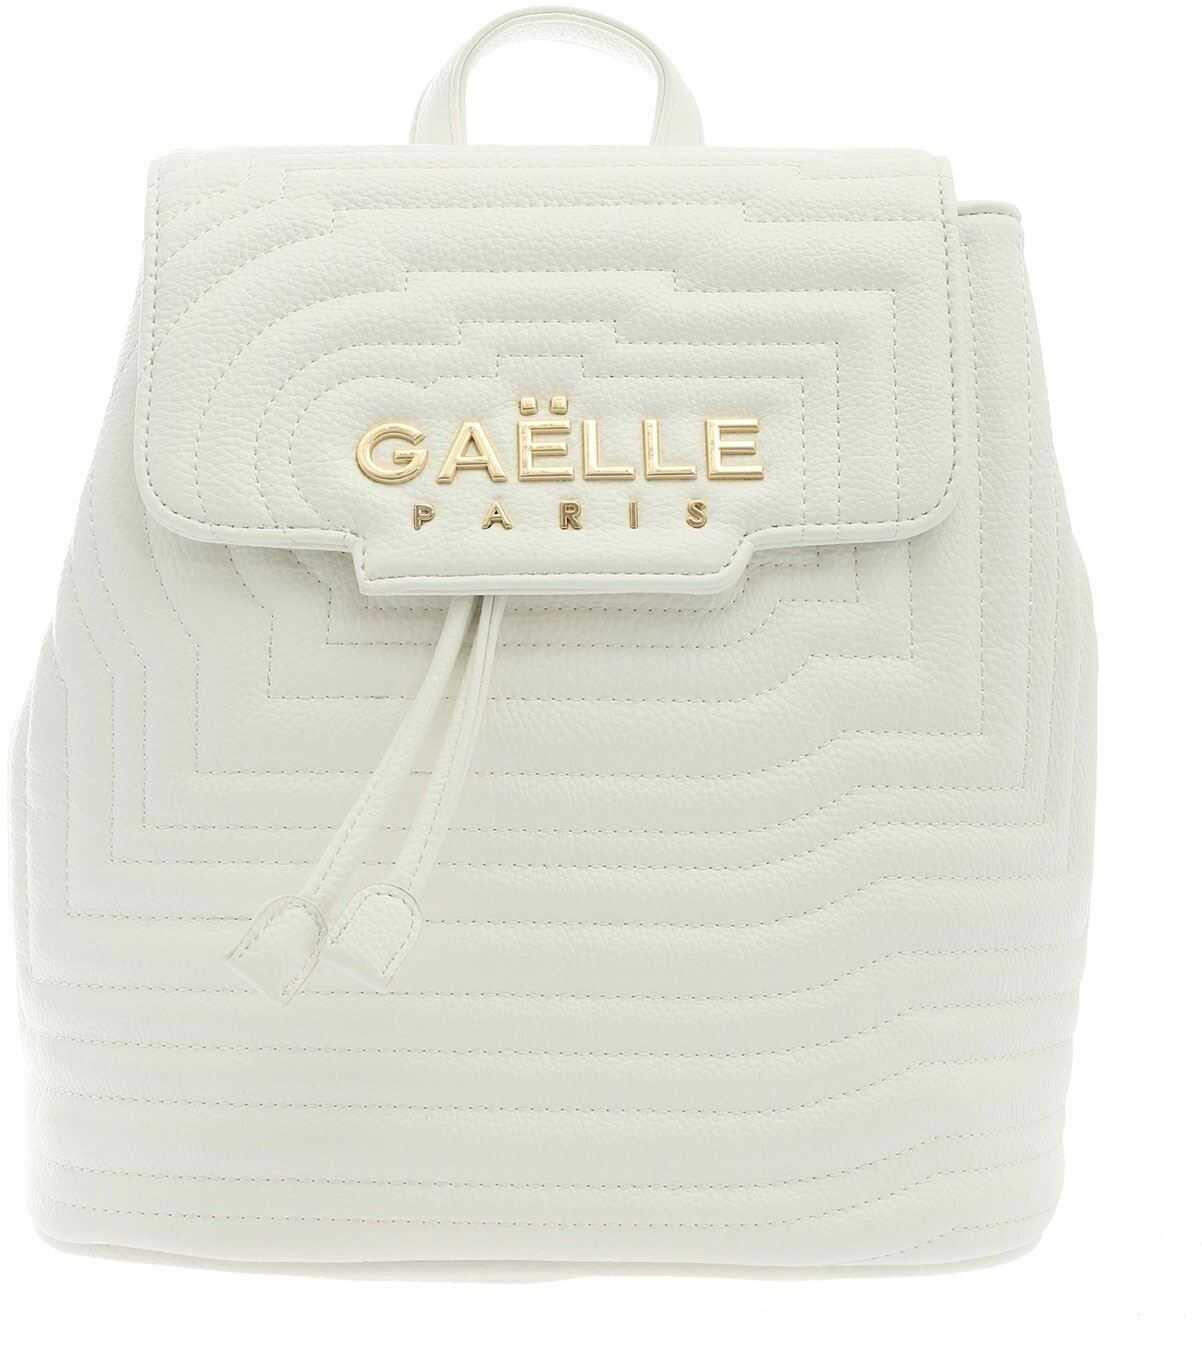 GAëLLE Paris Synthetic Leather Backpack In White White